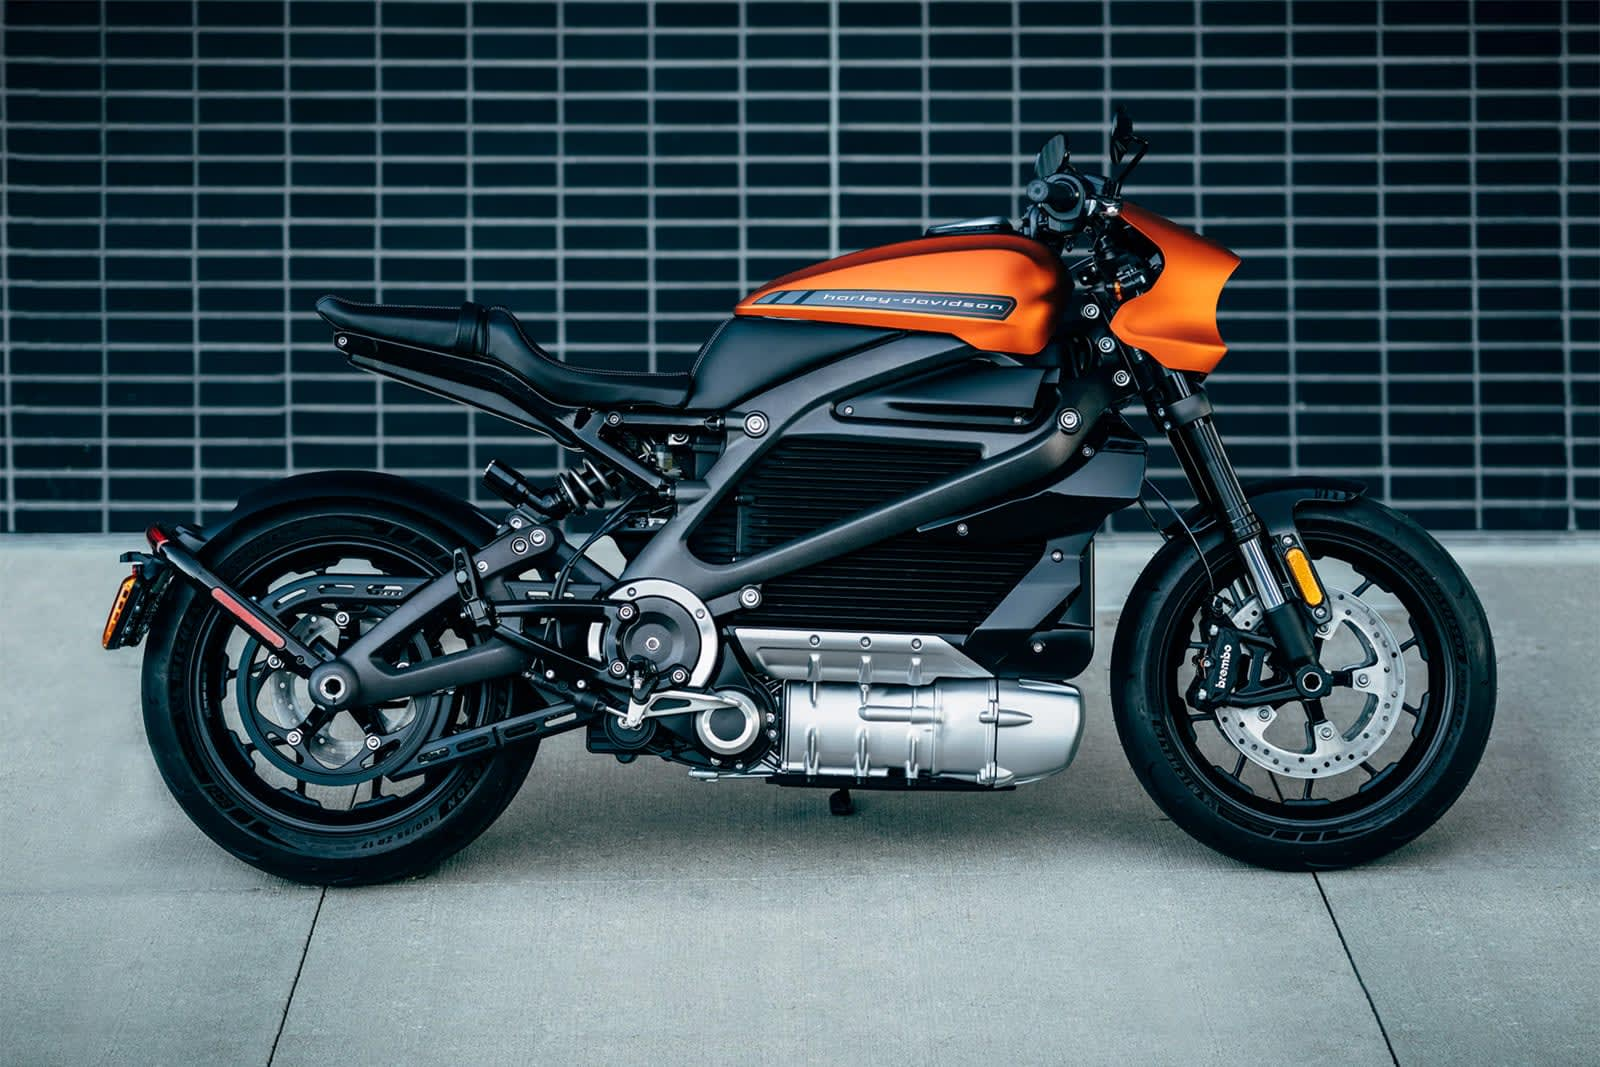 New Harley Davidson: Harley-Davidson's First Electric Motorcycle Arrives In